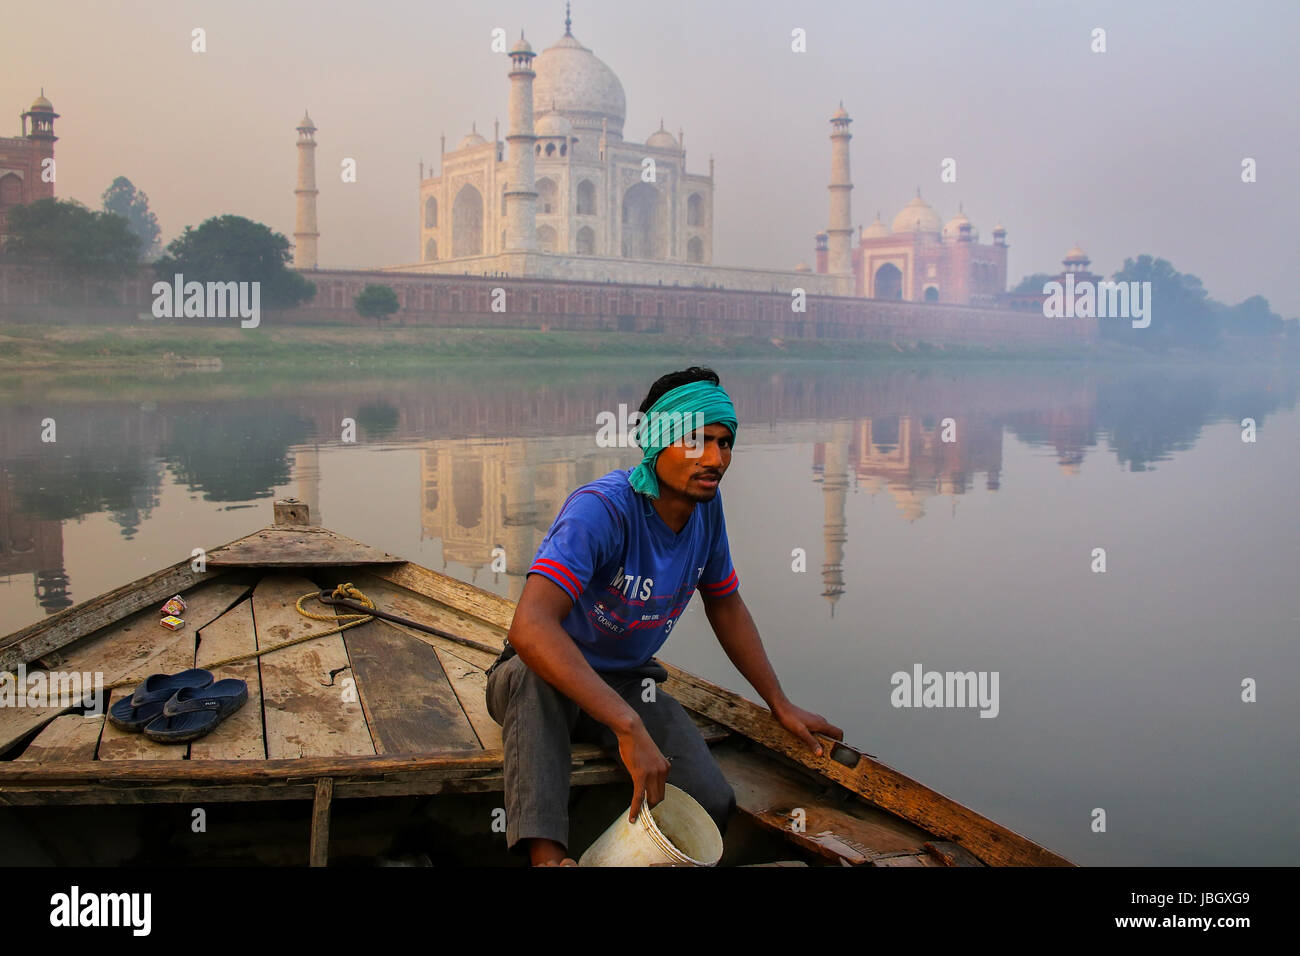 Local man bailing water out of the boat on Yamuna River near Taj Mahal in the morning, Agra, Uttar Pradesh, India. - Stock Image